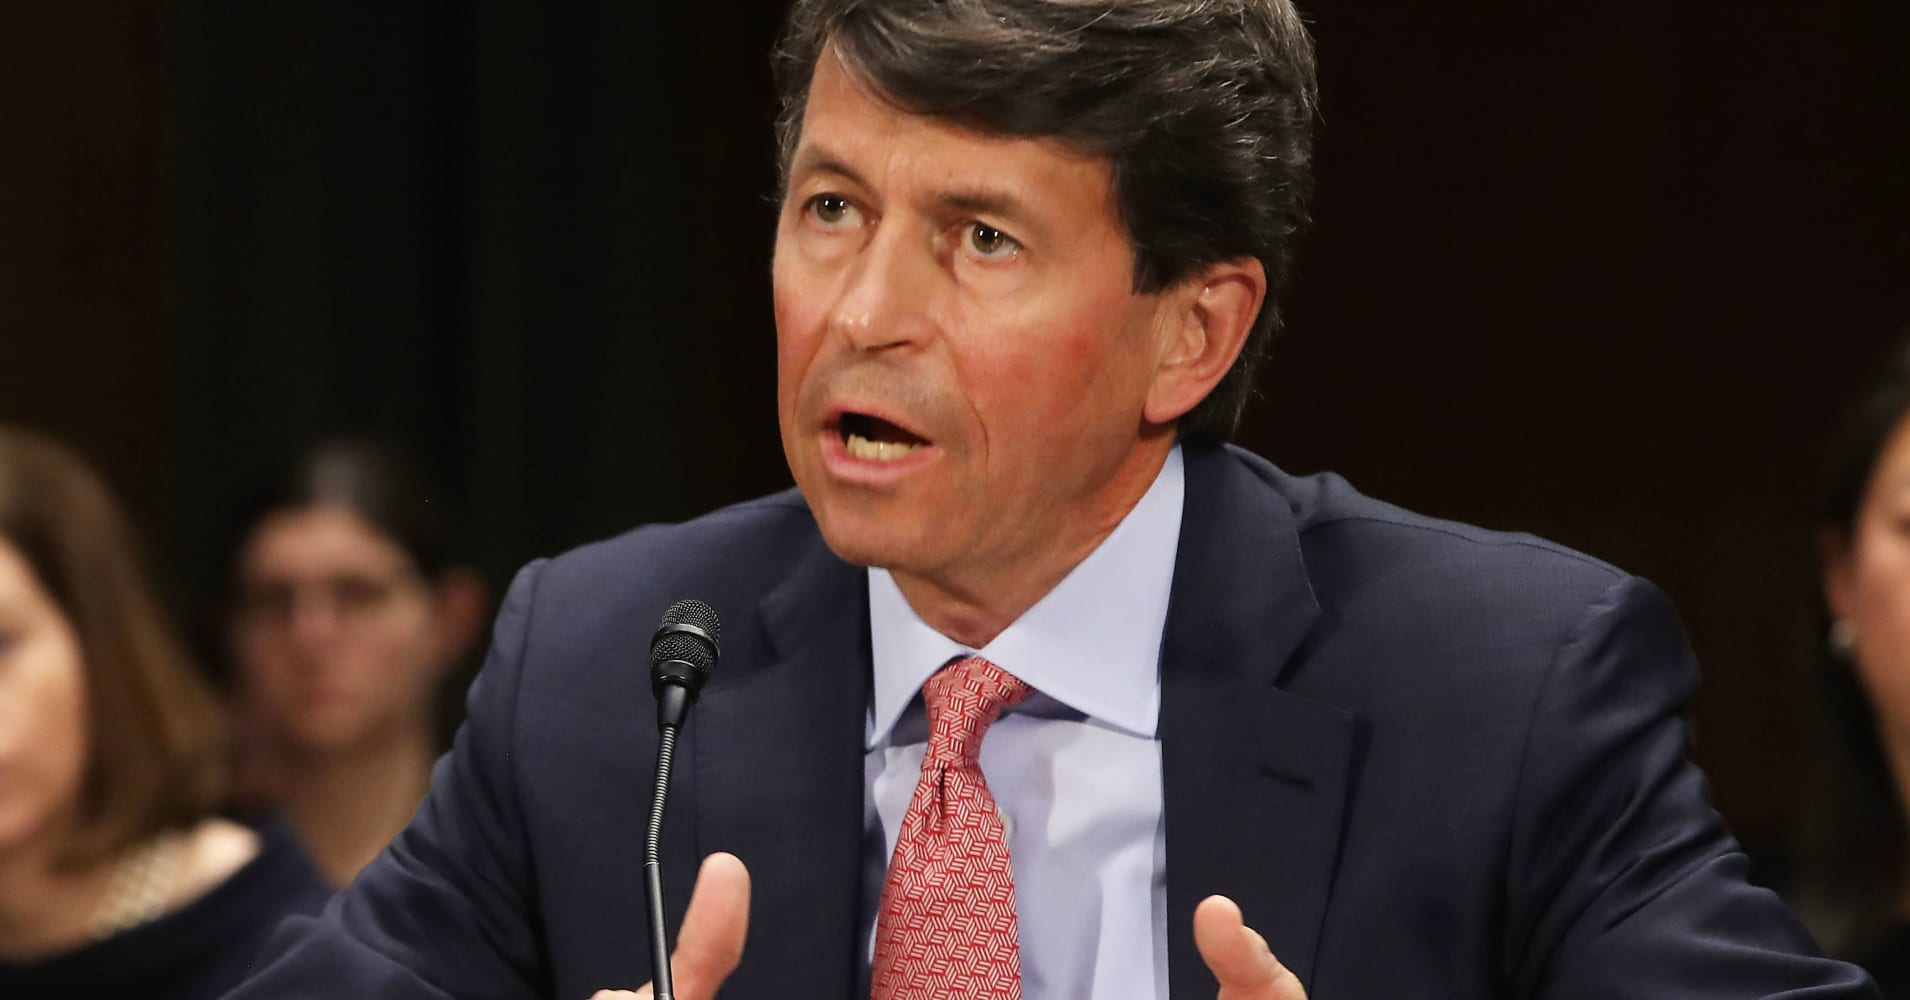 Equifax, Marriott CEOs testify in Senate over data breaches